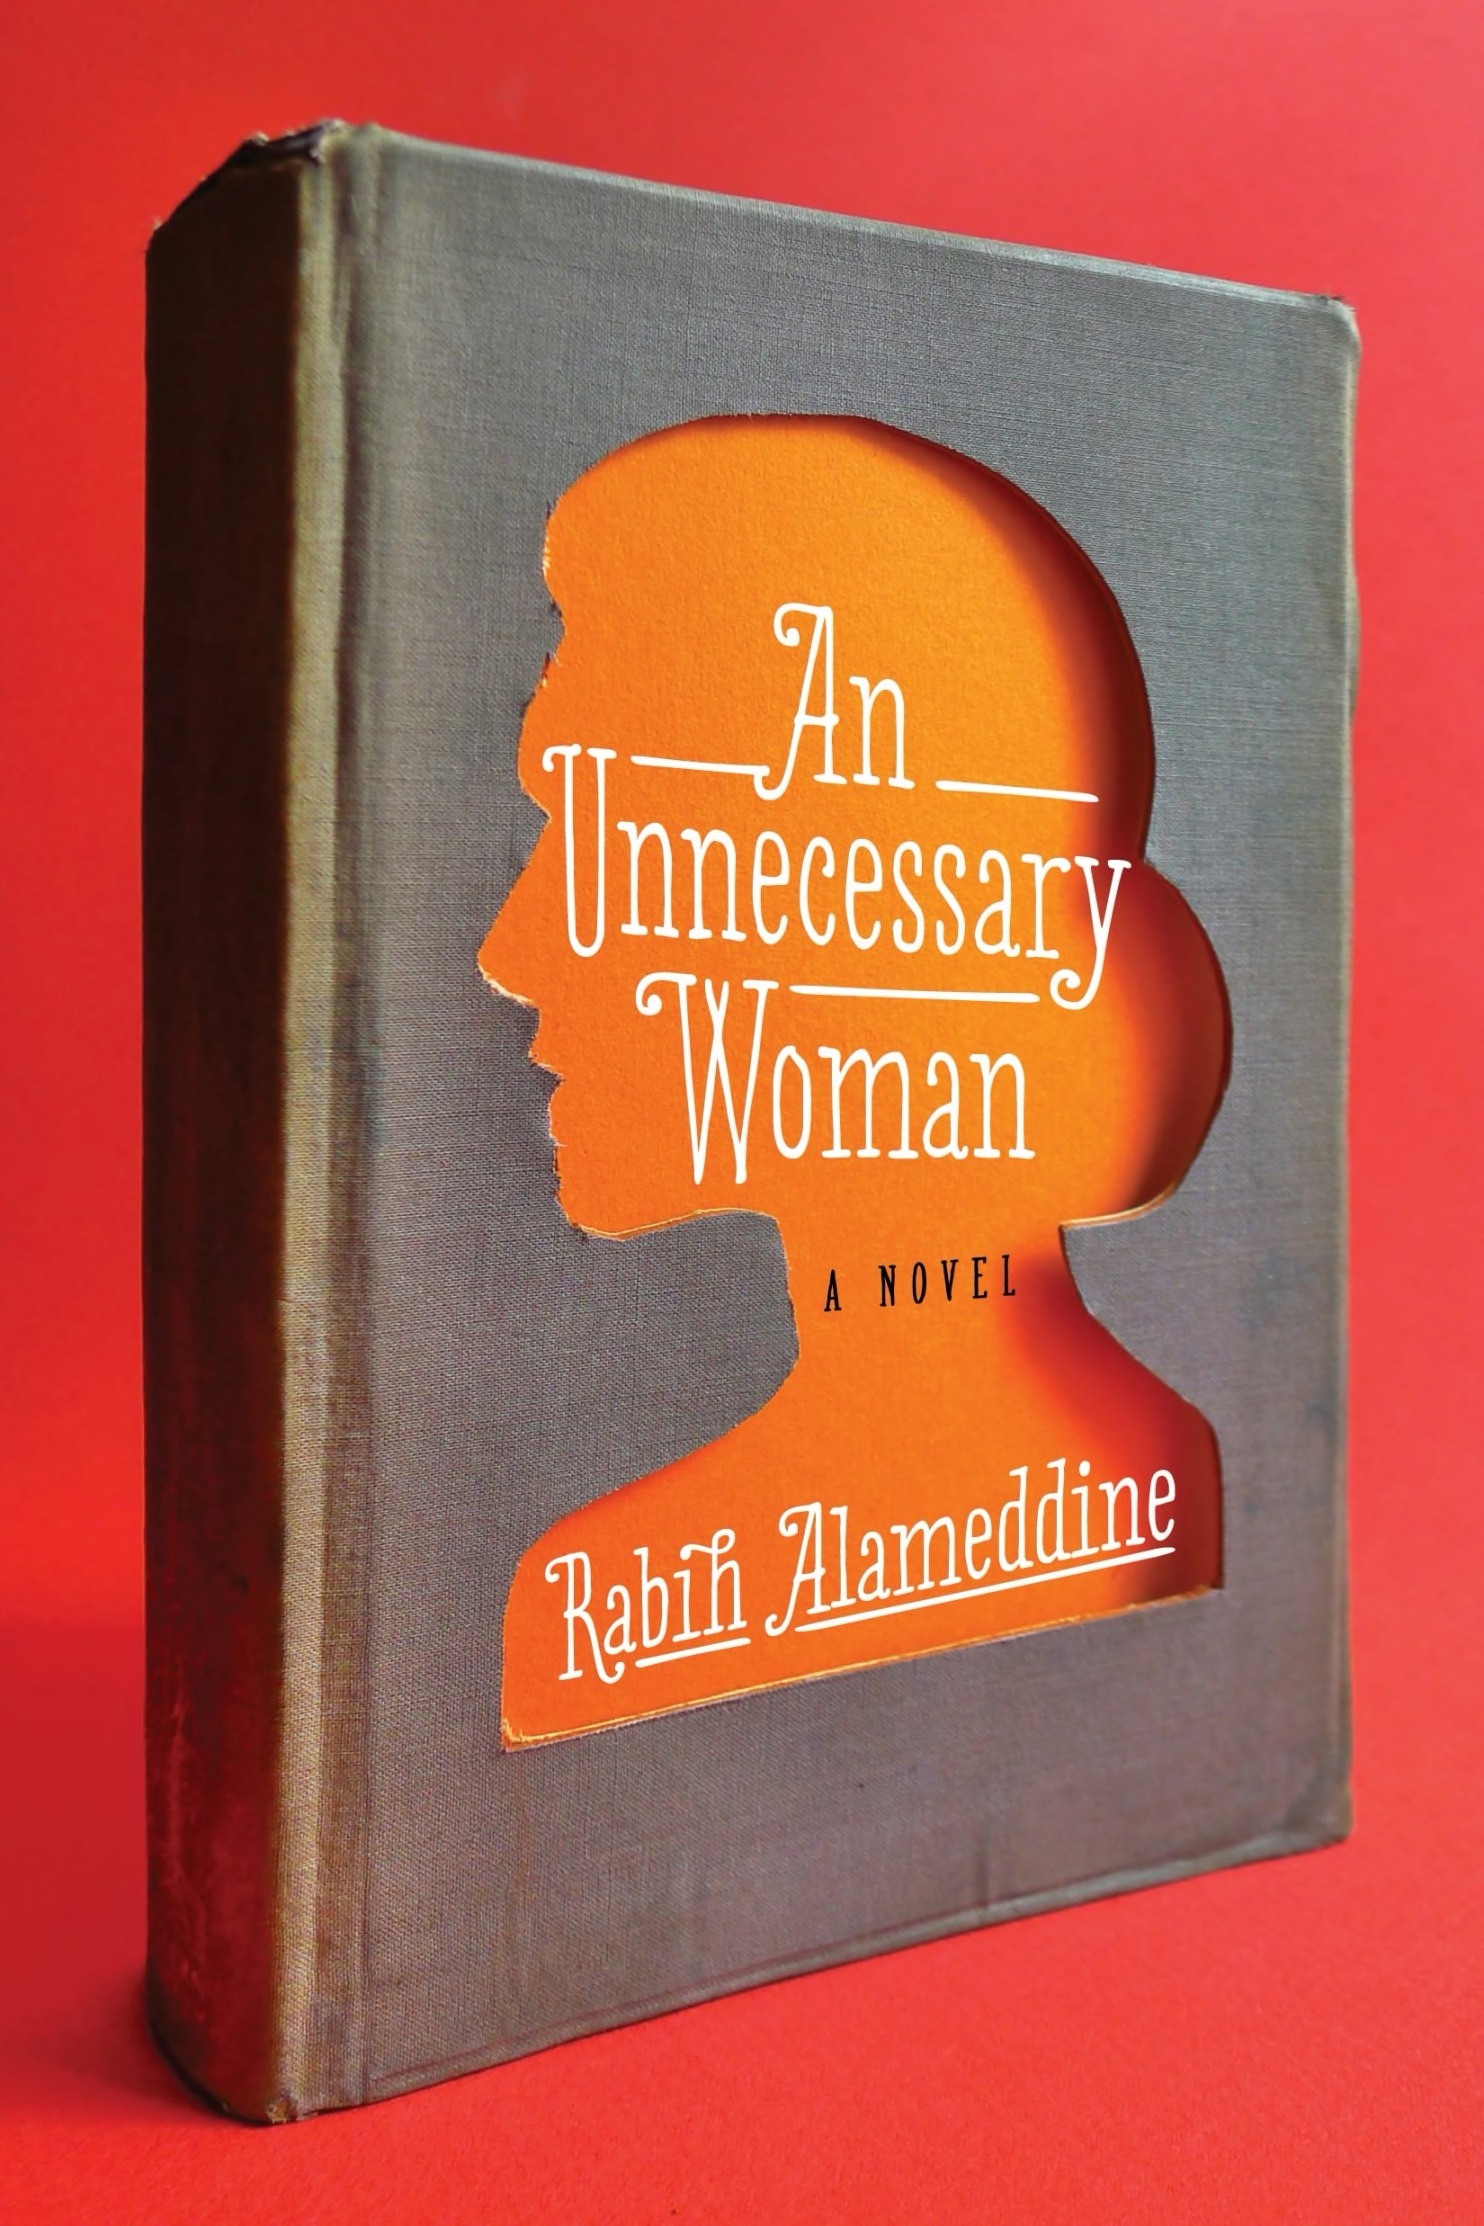 Alameddine, Unnecessary Woman